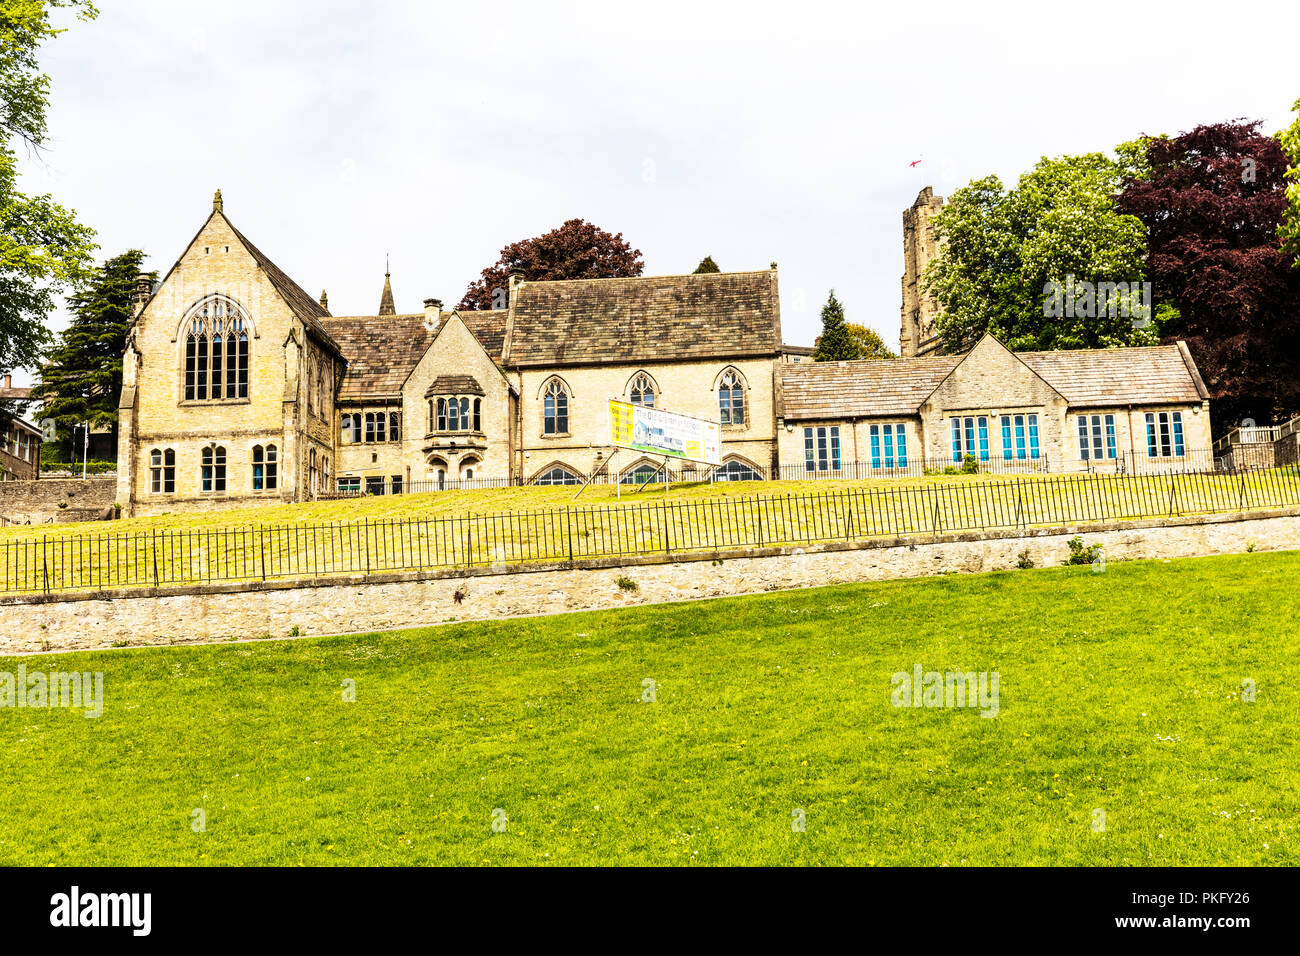 Richmond Old Grammar School, the old grammar school richmond, Richmondshire, Building Preservation, closed schools UK, schools closing, empty, unused - Stock Image